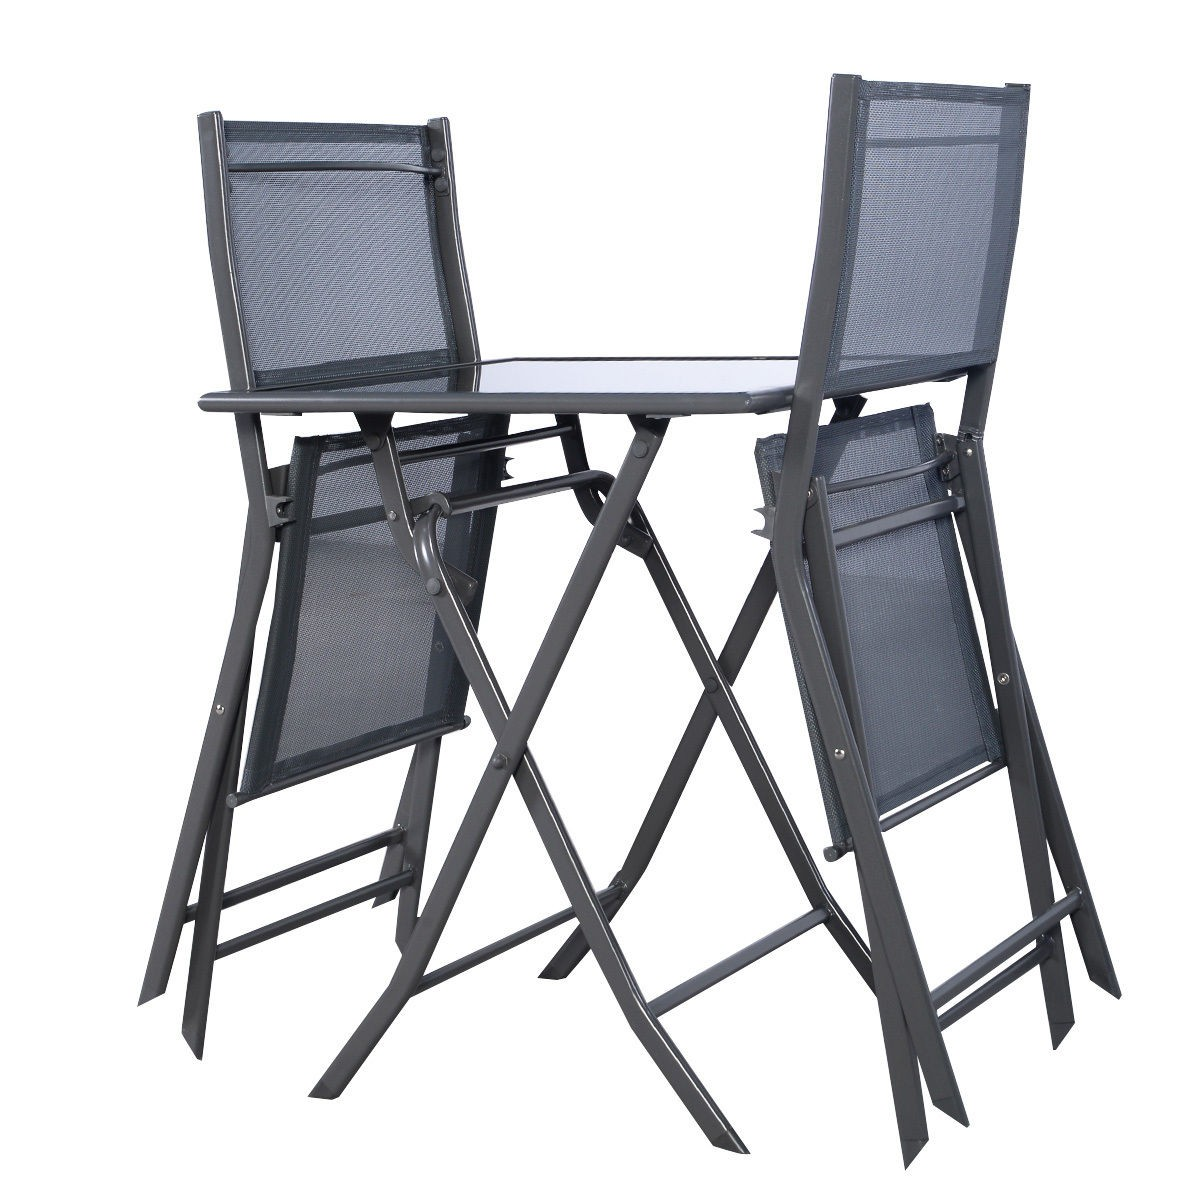 Garden Chair And Table Set On Ebay: 3PCS Bistro Set Garden Backyard Table Chairs Outdoor Patio